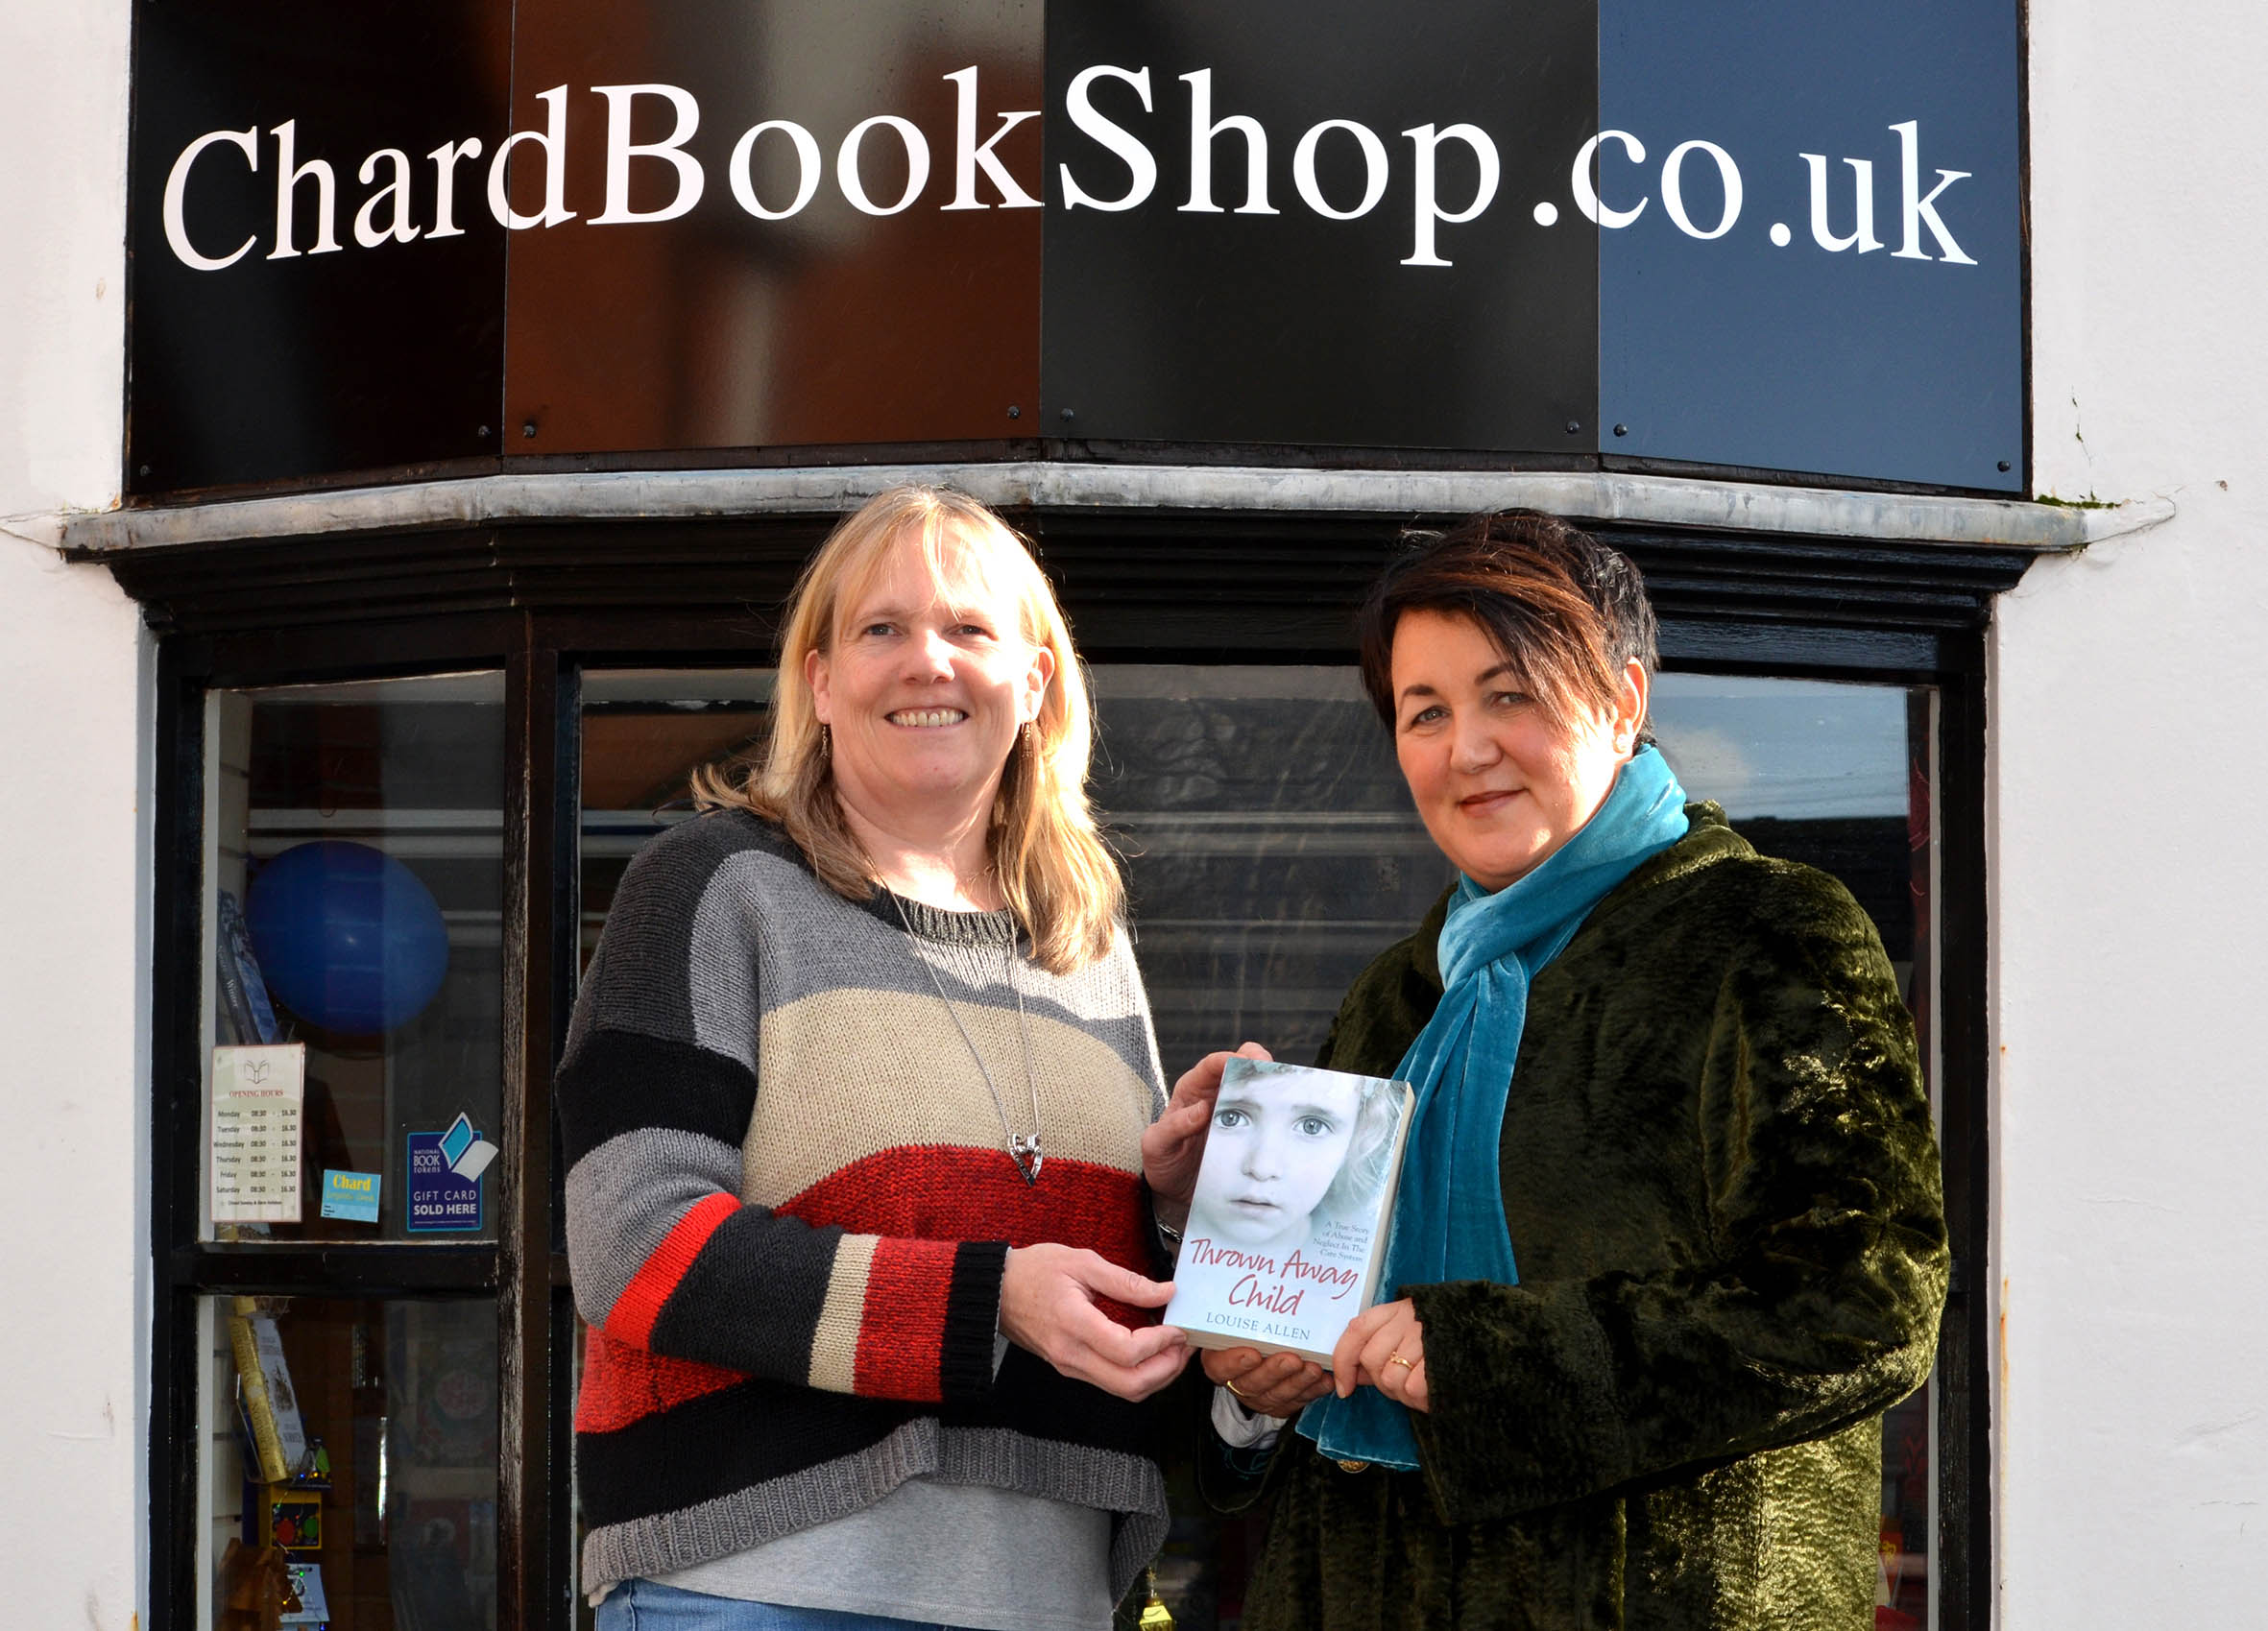 Amanda Broom of ChardBookShop, and author Louise Allen